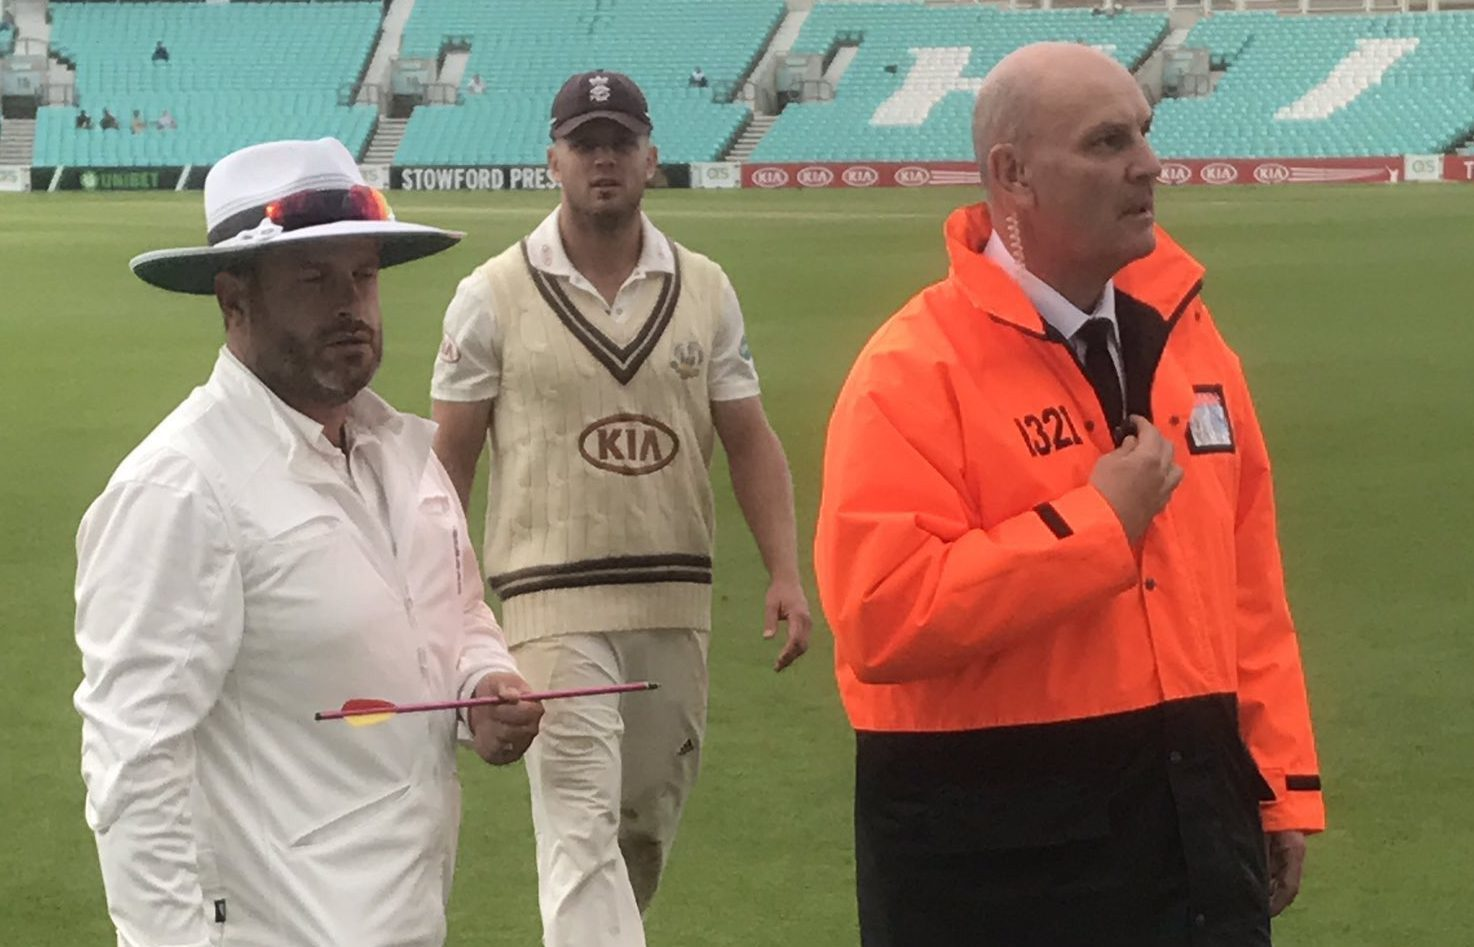 Picture taken with permission from the twitter feed of @topmanjem of a match official holding an arrow that was fired on to the pitch at the Kia Oval during a County Championship clash between Surrey and Middlesex.